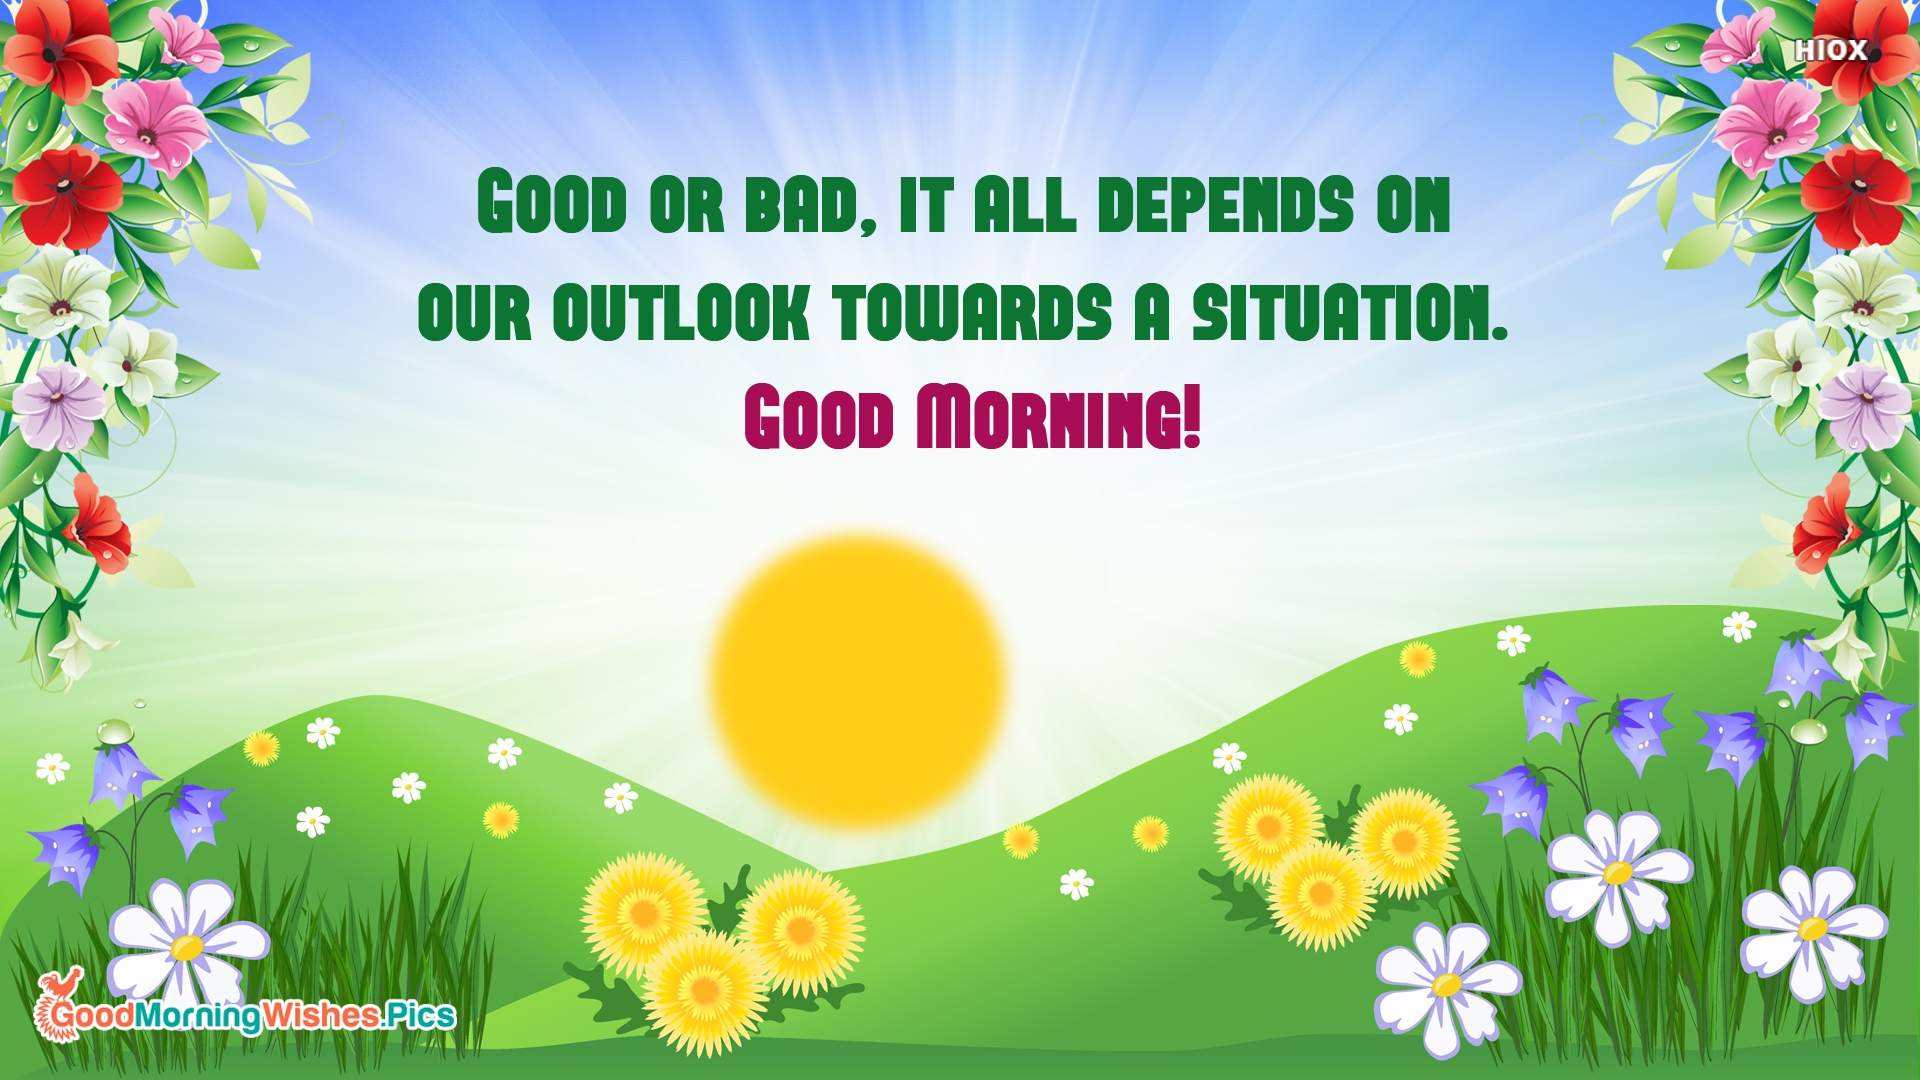 Good or Bad, It All Depends On Our Outlook Toward A Situation. Good Morning!